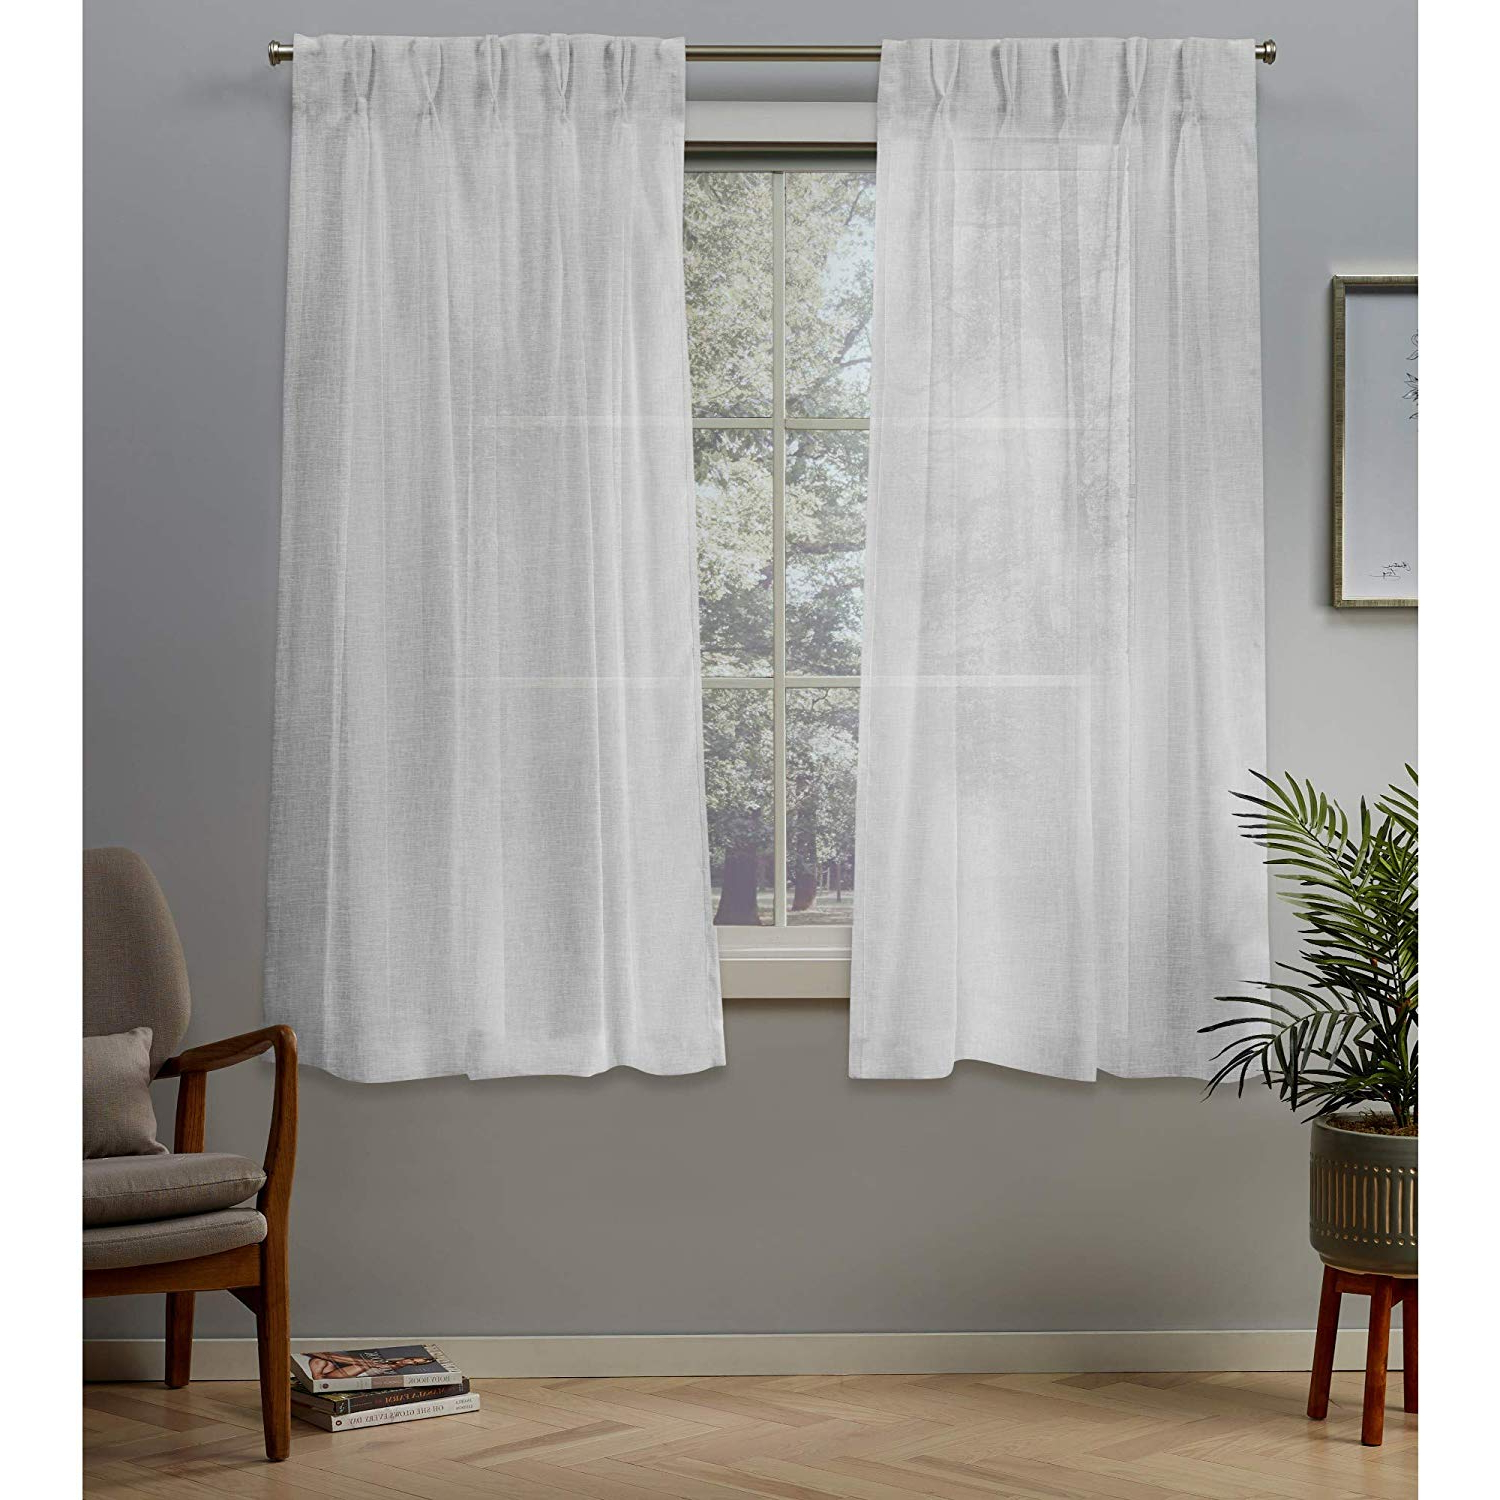 """Fashionable Exclusive Home Curtains Belgian Pp Panel Pair, 63"""" Length, Winter White Intended For Luxury Collection Monte Carlo Sheer Curtain Panel Pairs (View 13 of 20)"""